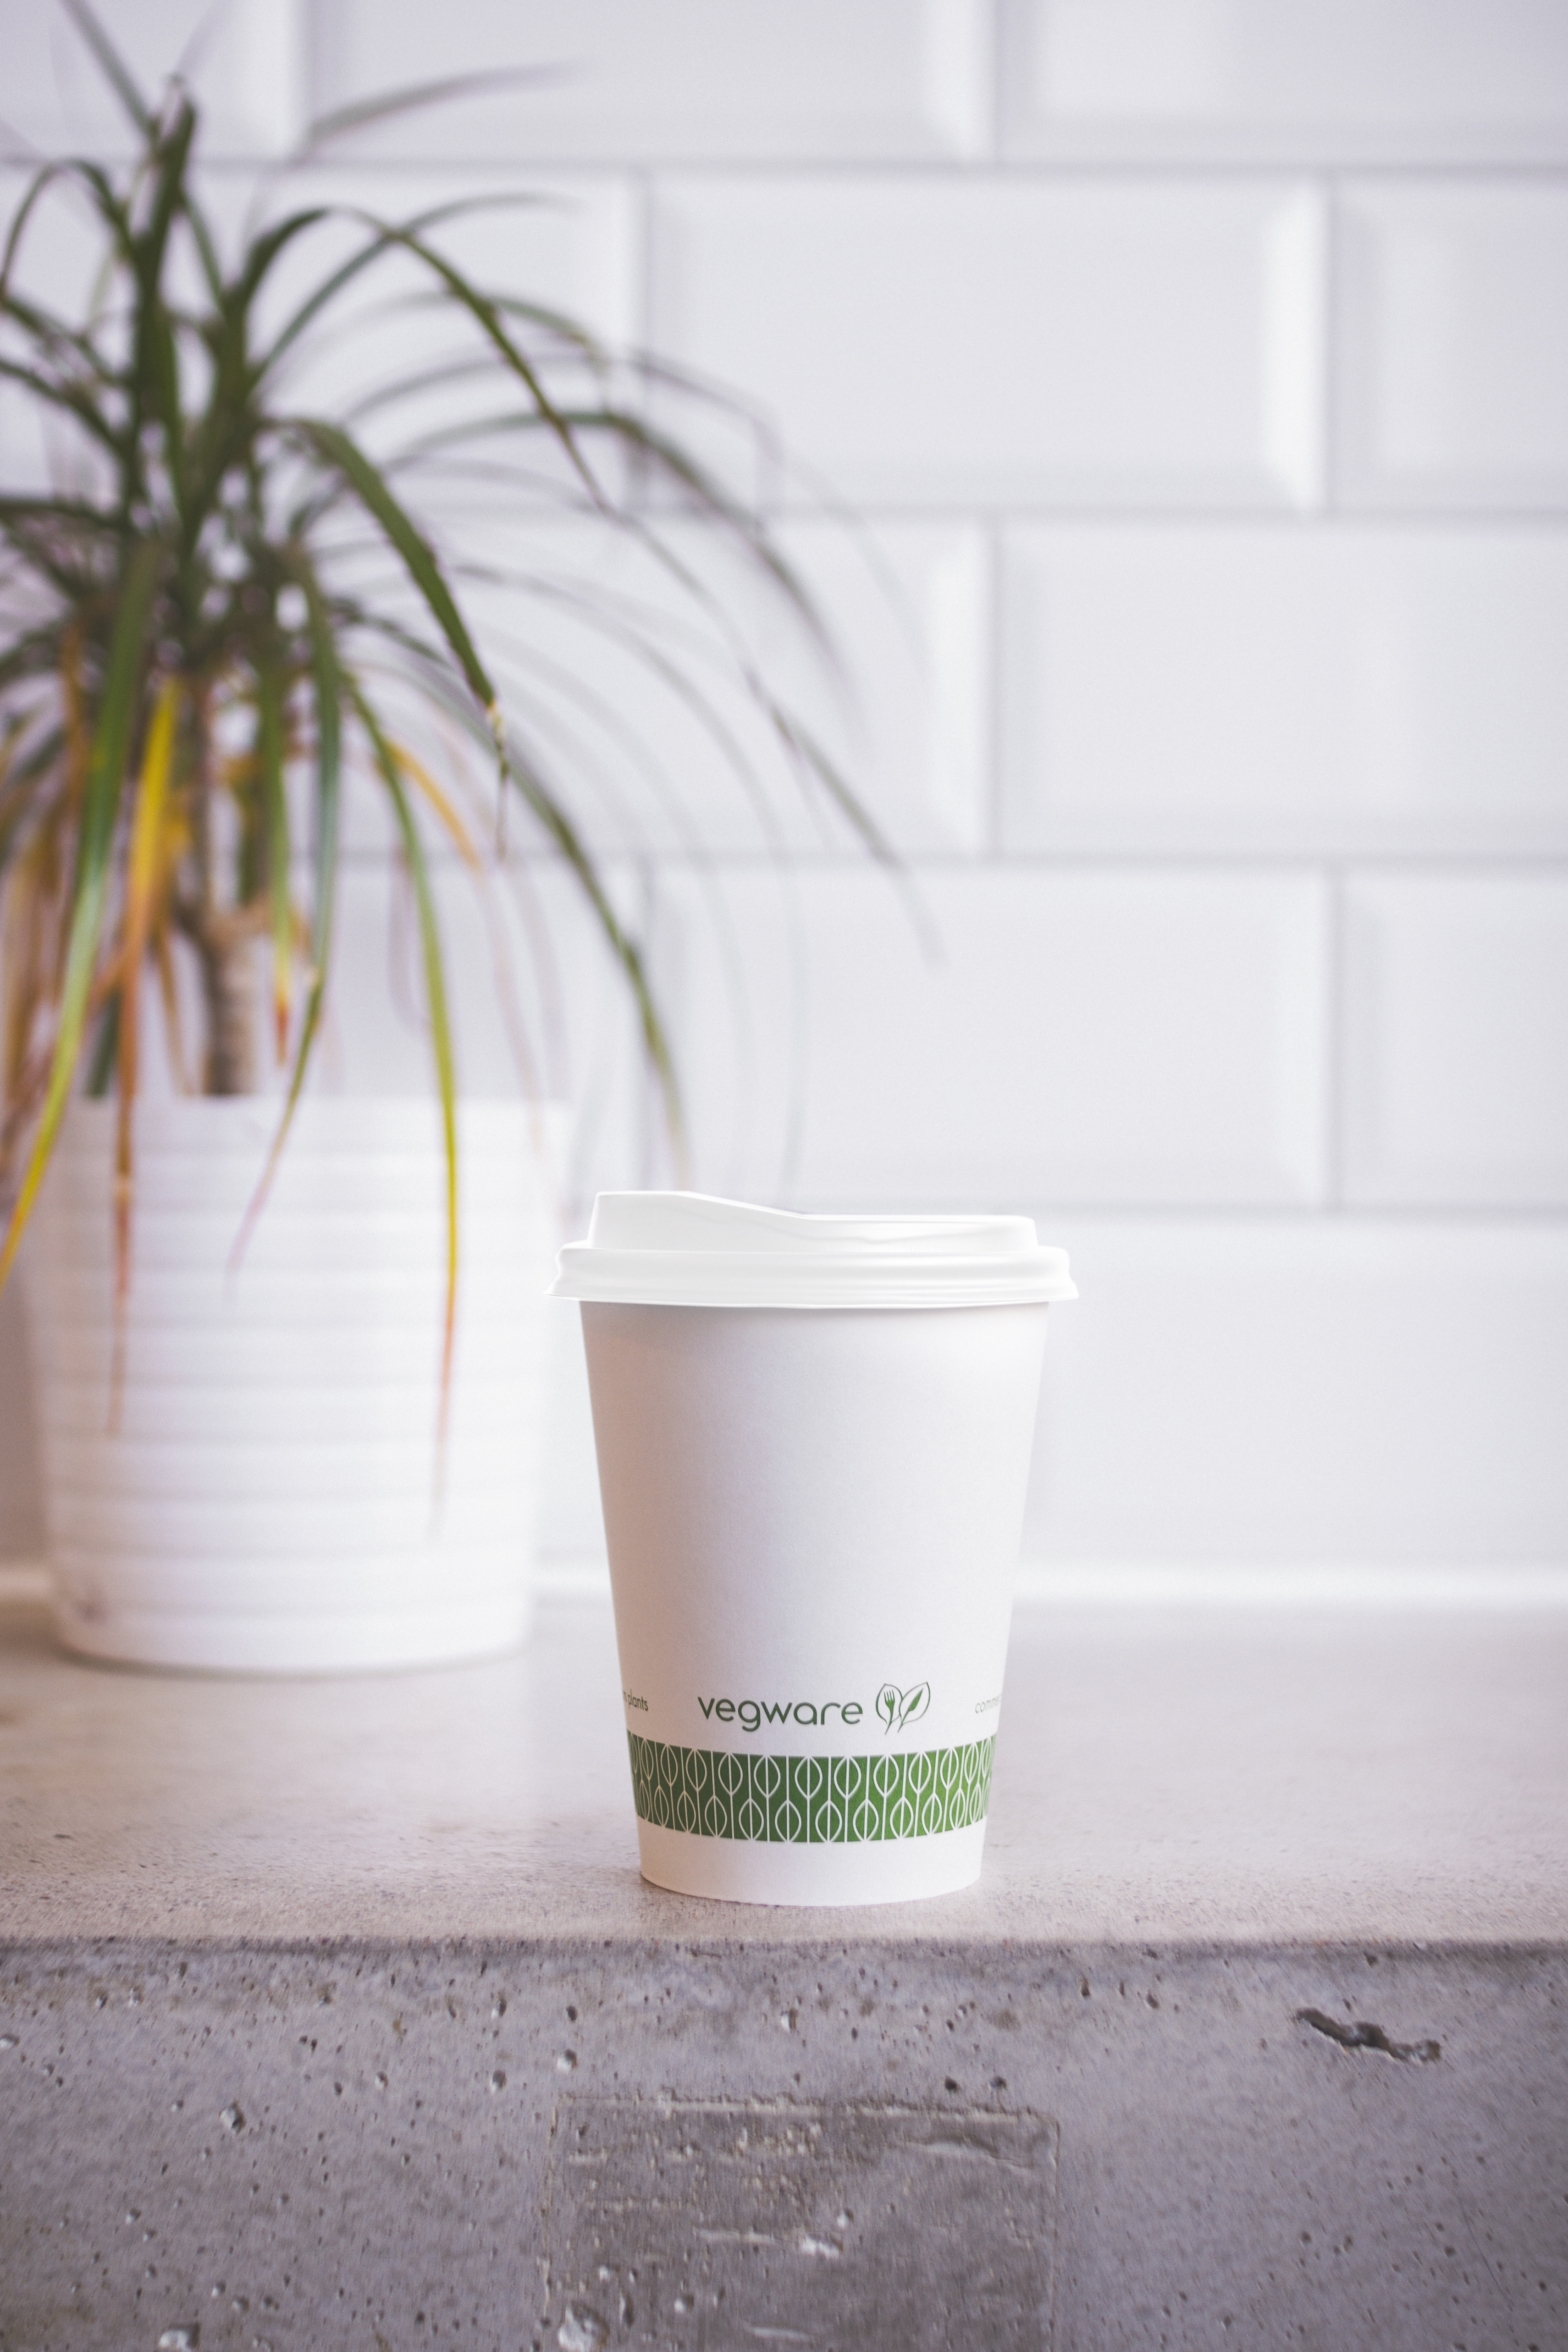 8 oz Hot Cup, Material: PLA lined paper, Color: White with Green Print, Compostable, 1000/cs